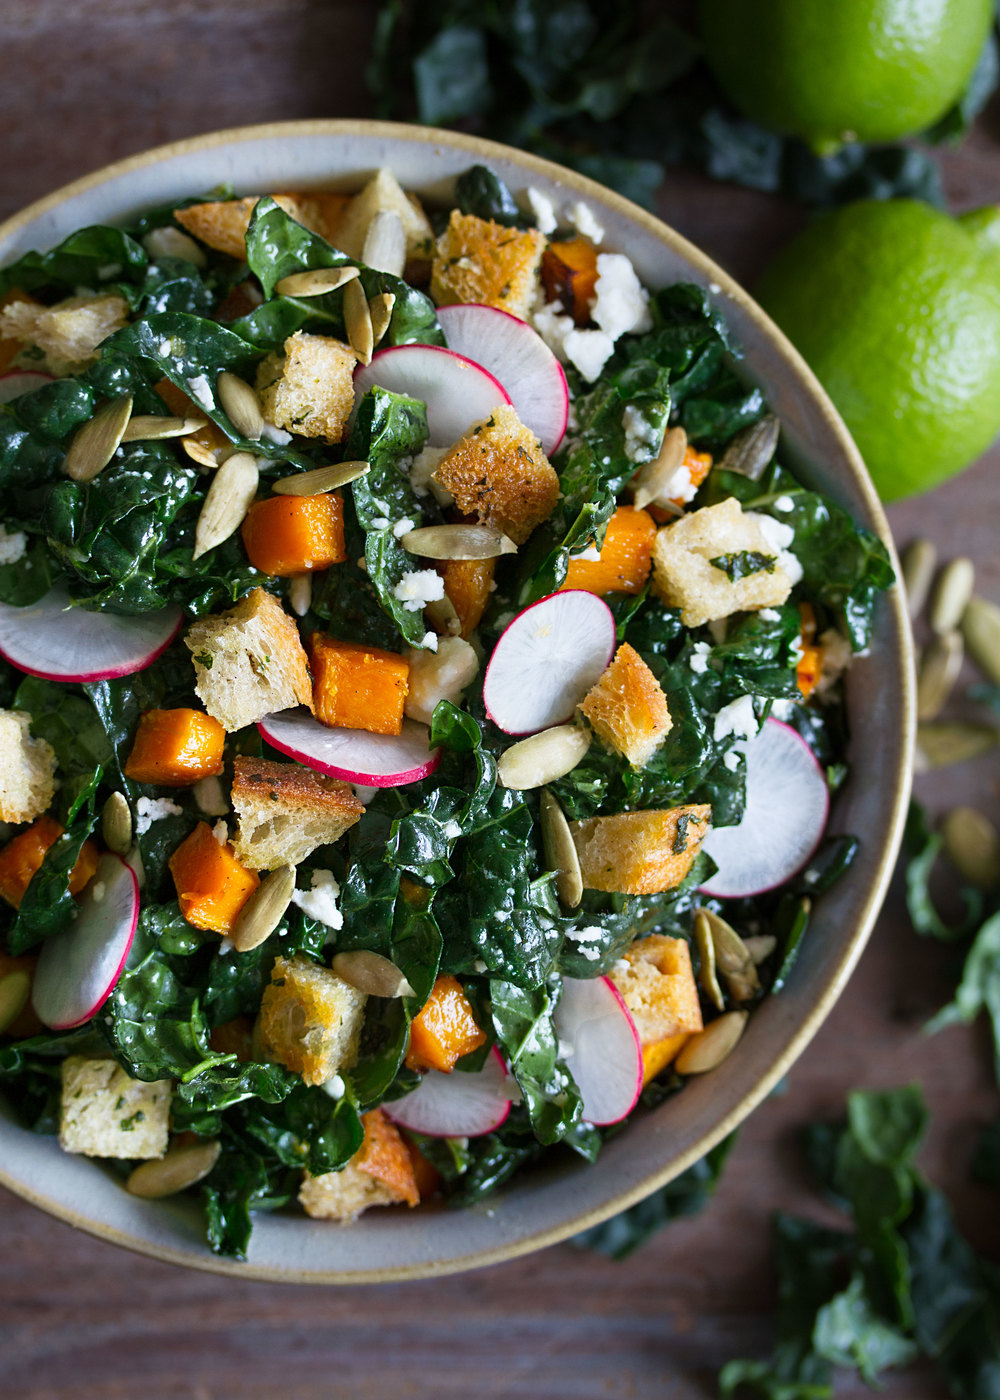 Mexican kale salad with butternut squash and croutons